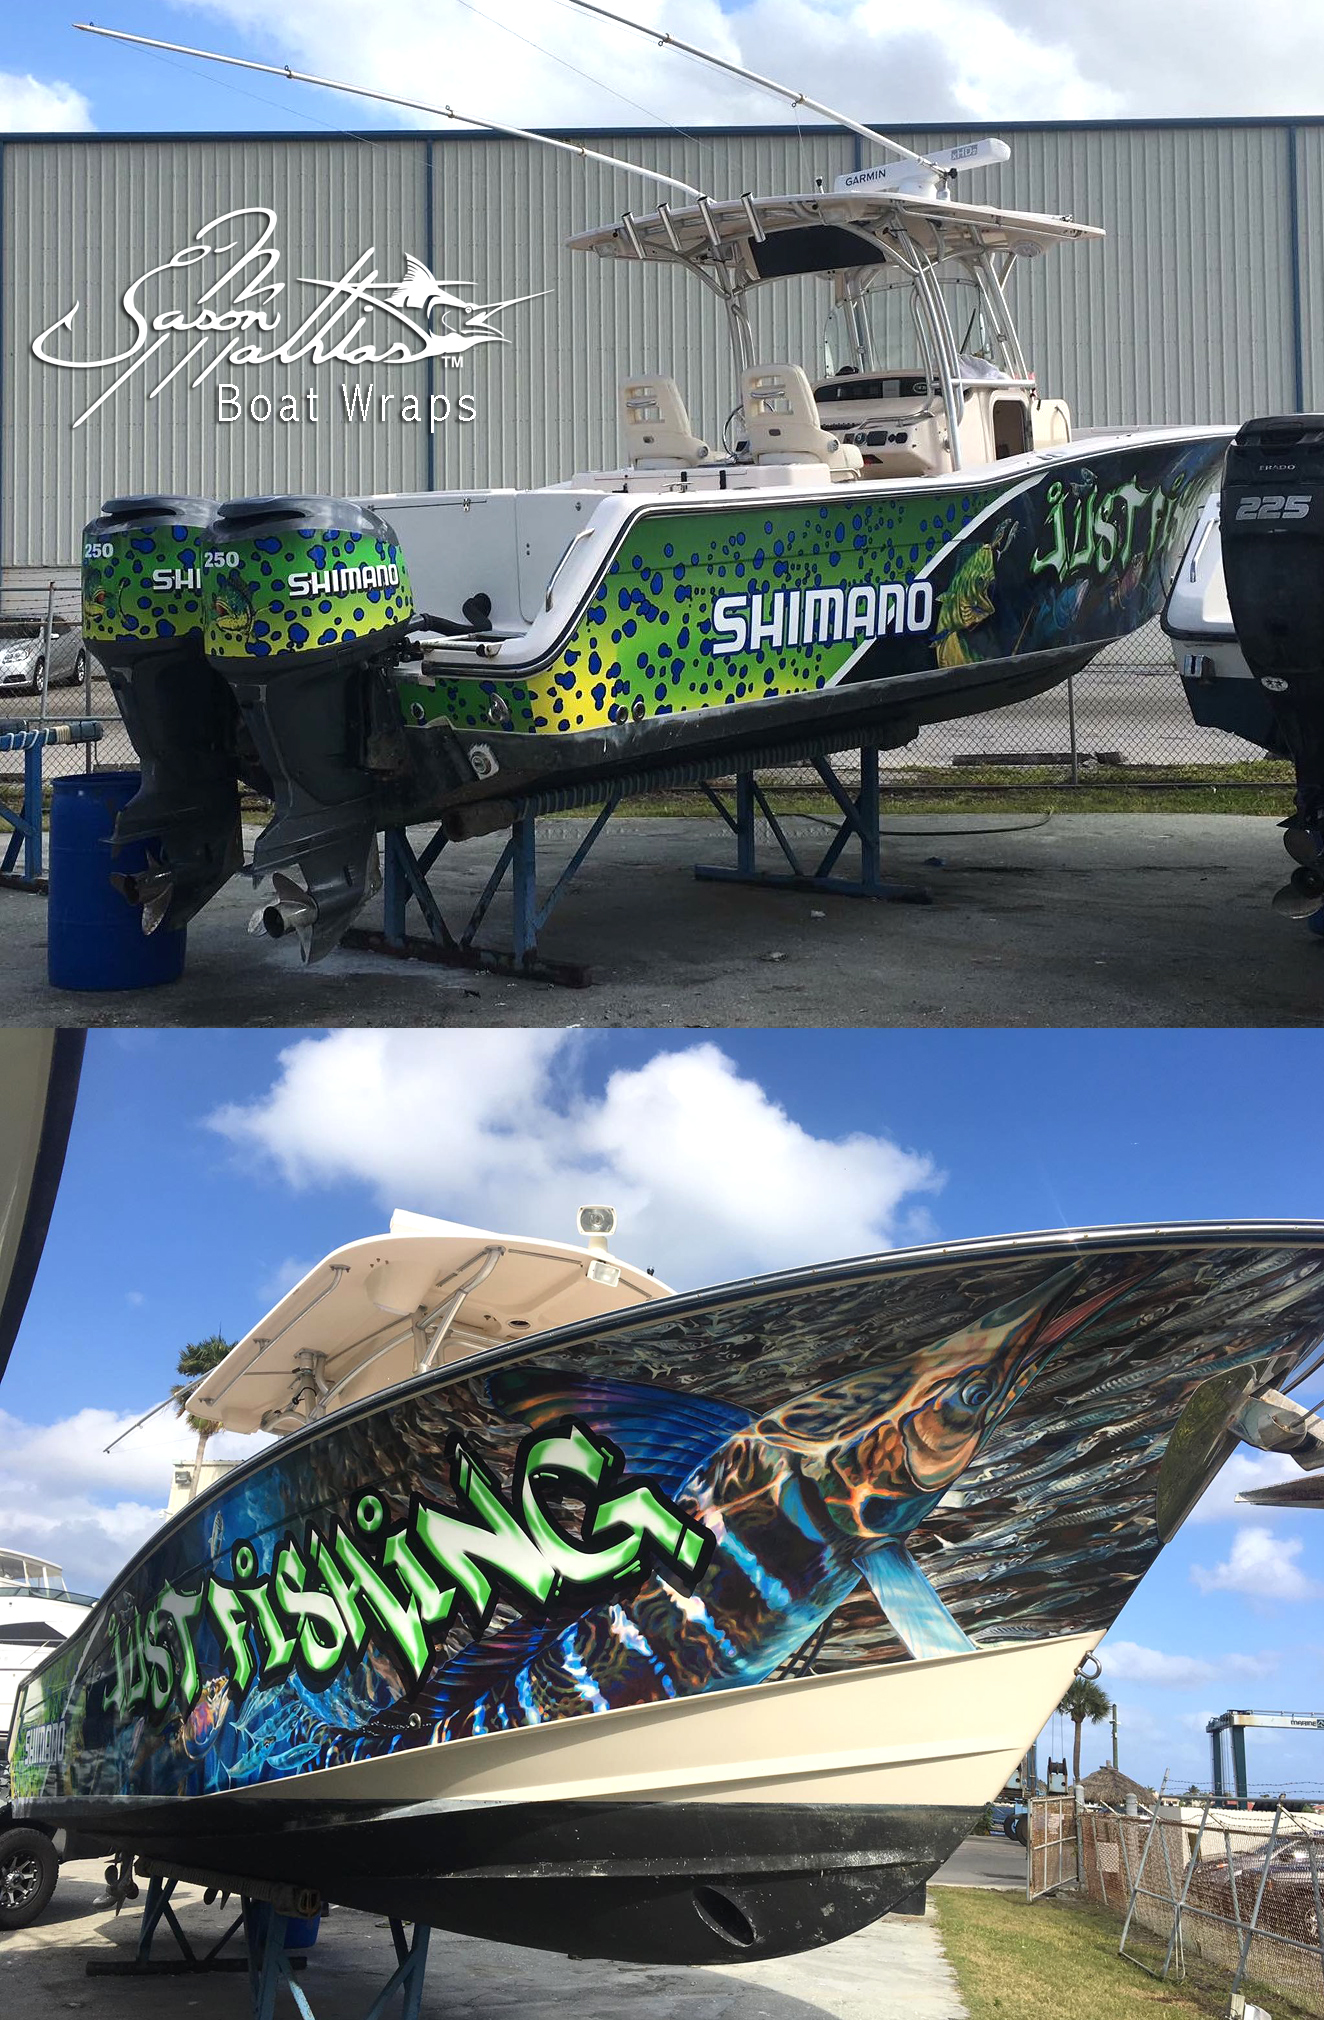 jason-mathias-boat-wrap-art-and-designs.jpg